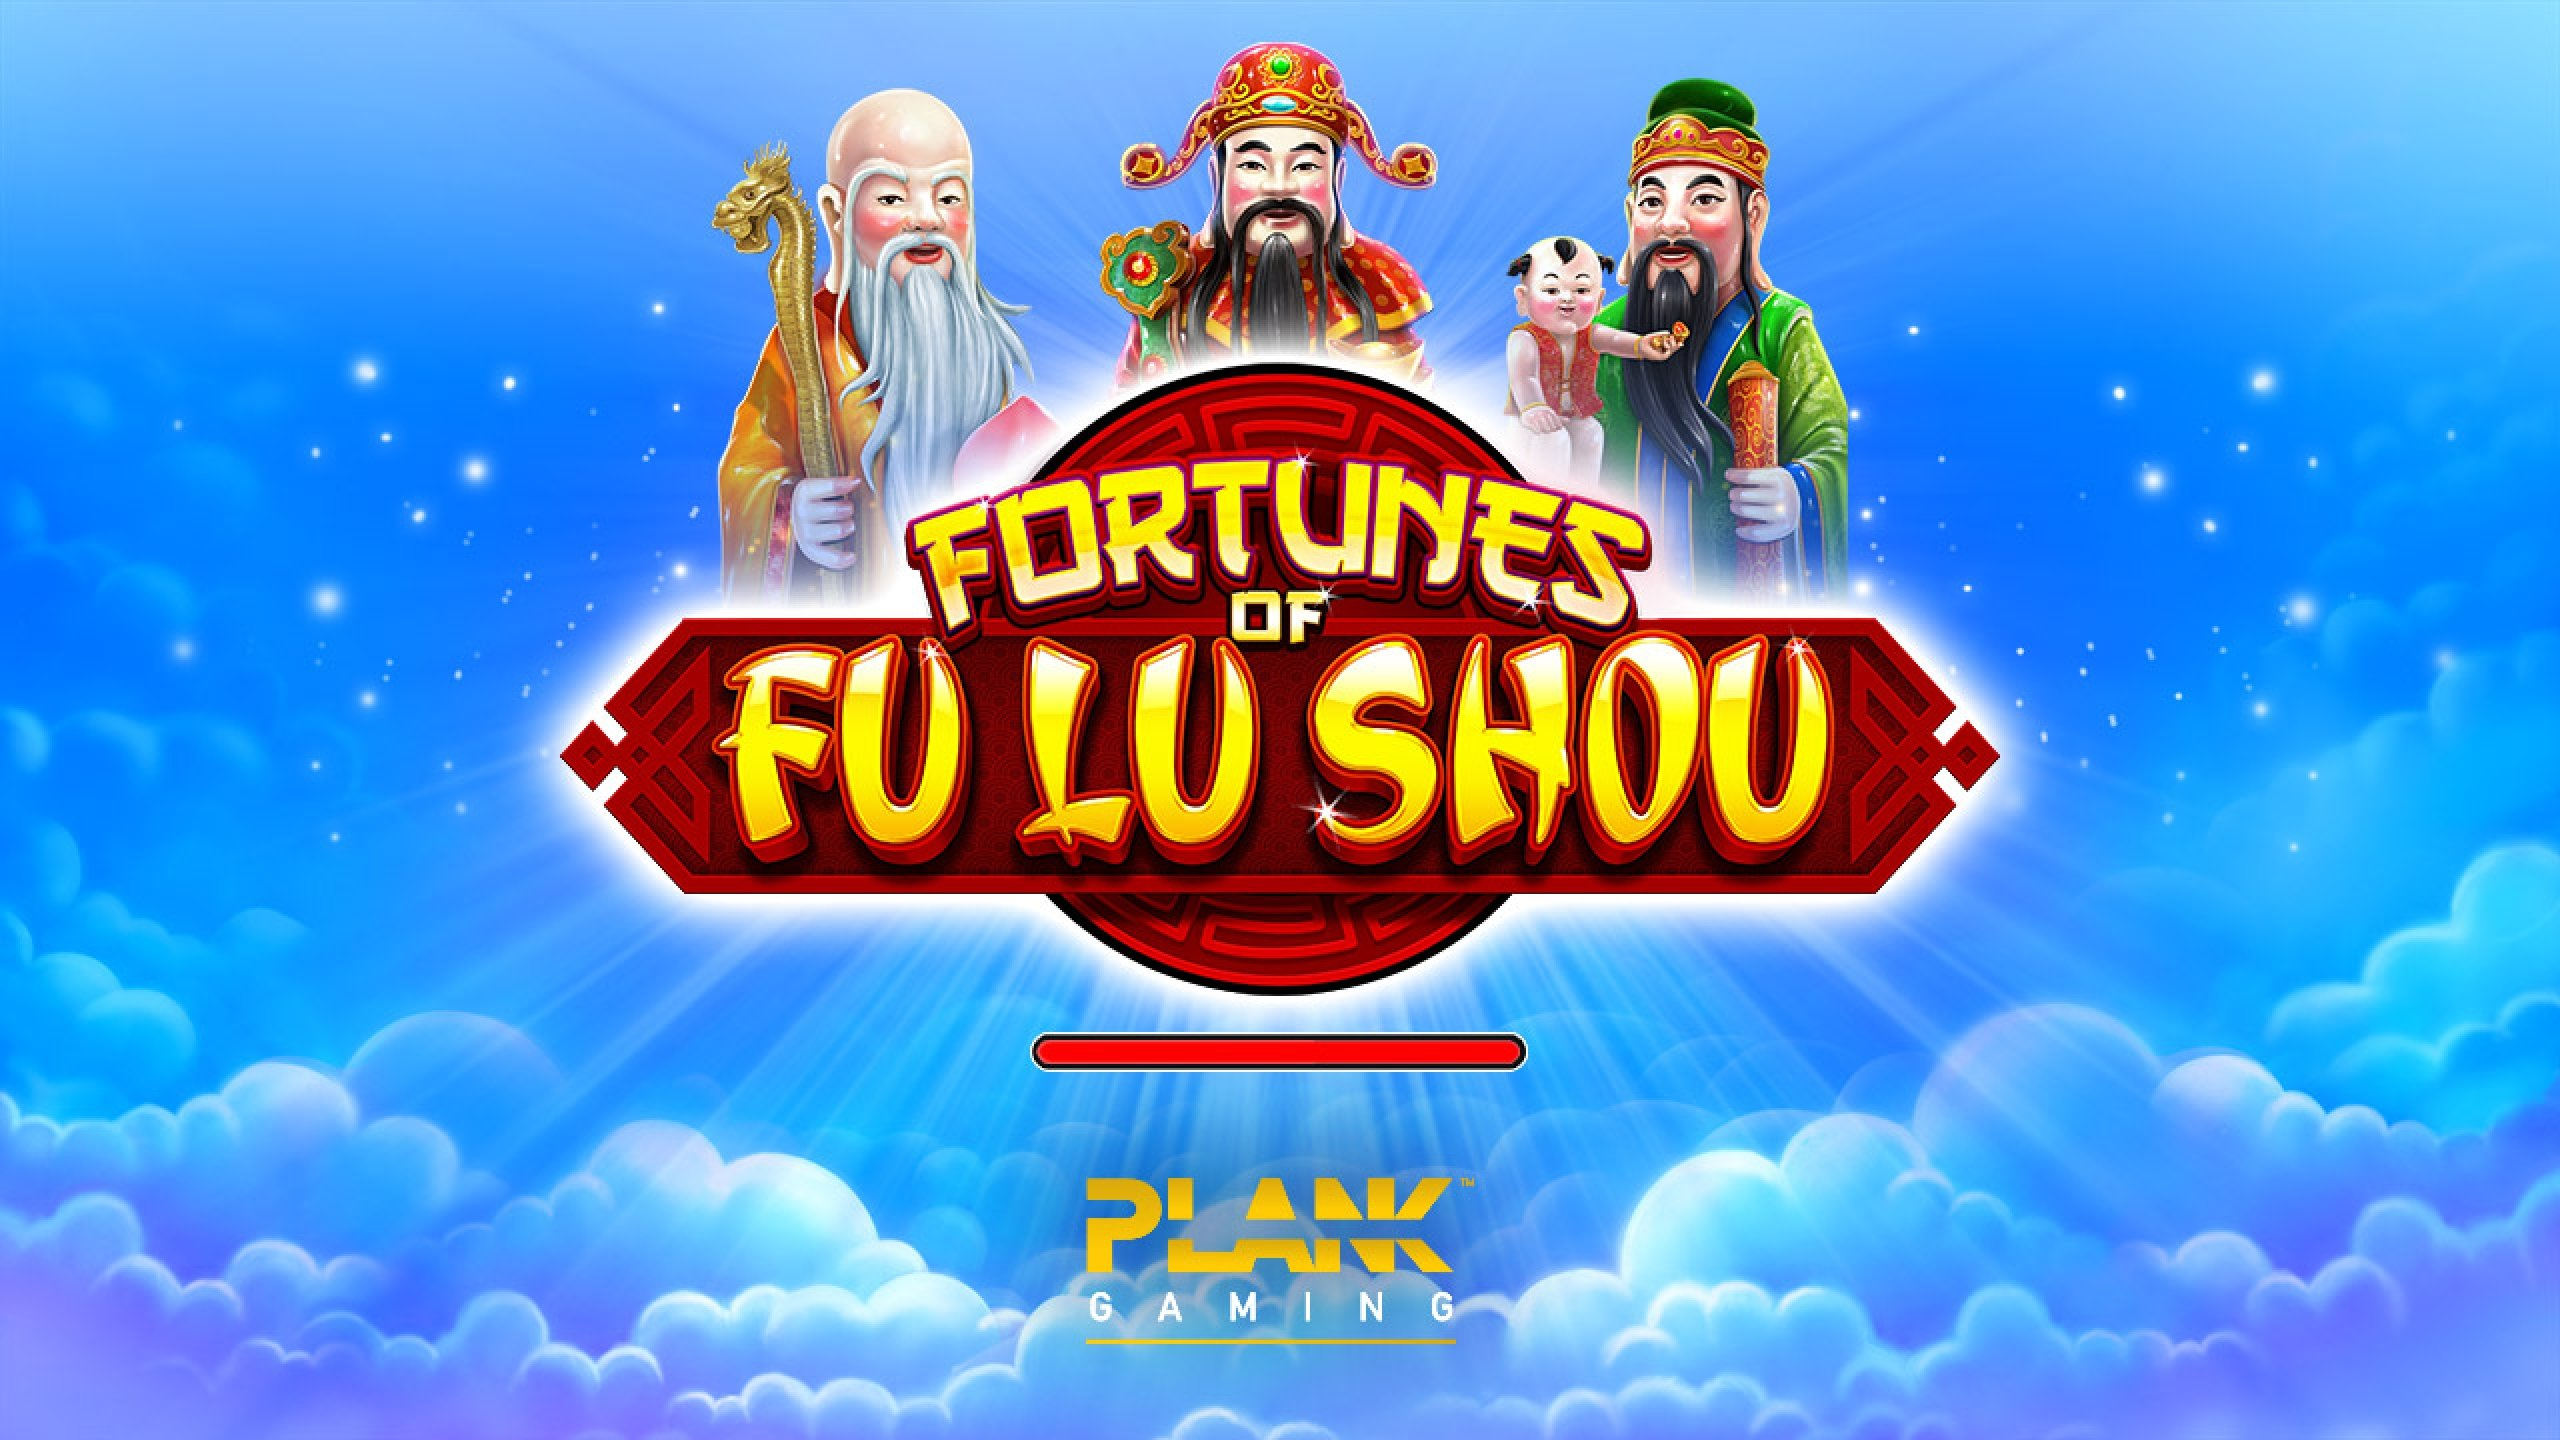 The Fortunes of Fu Lu Shou Online Slot Demo Game by Plank Gaming